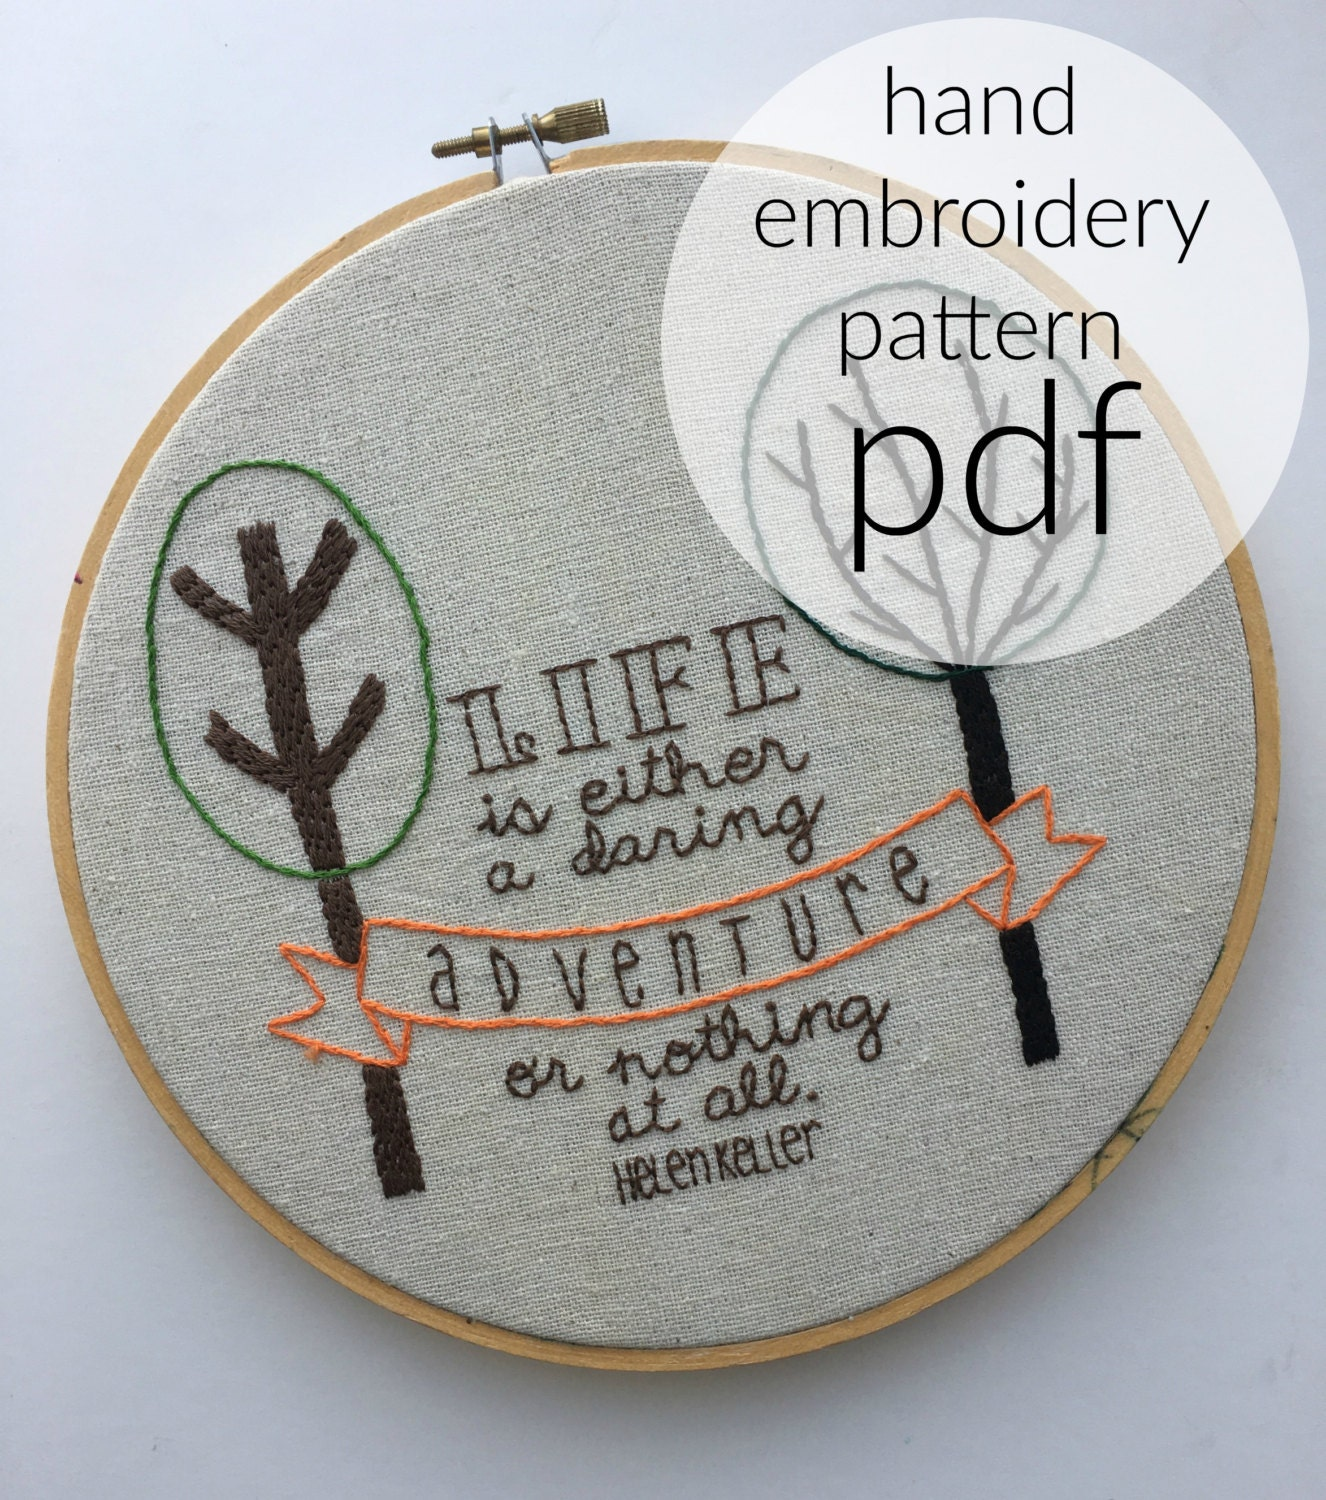 Helen keller quote hand embroidery pattern instant